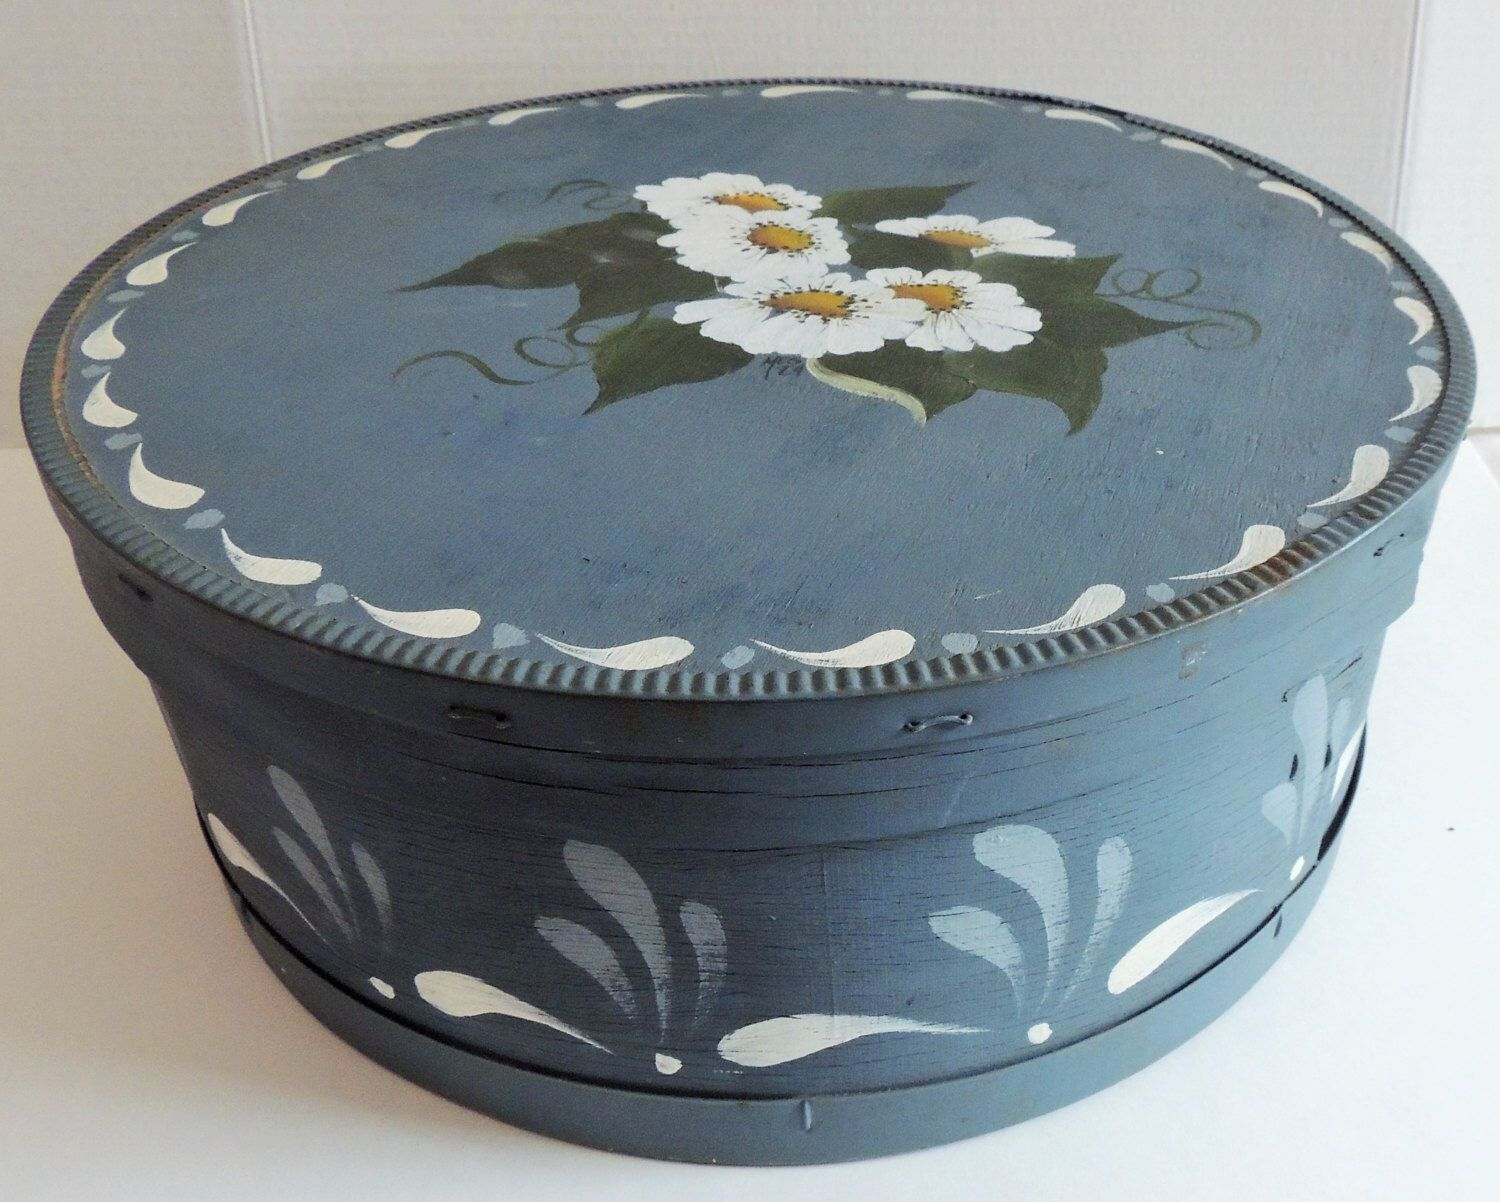 Hand Painted Wood Cheese Box Vintage Folk Art Decorative Wood Storage Box Tole Painted Artist Signed And Dated 1984 by vintagelema on Etsy https://www.etsy.com/listing/196472108/hand-painted-wood-cheese-box-vintage